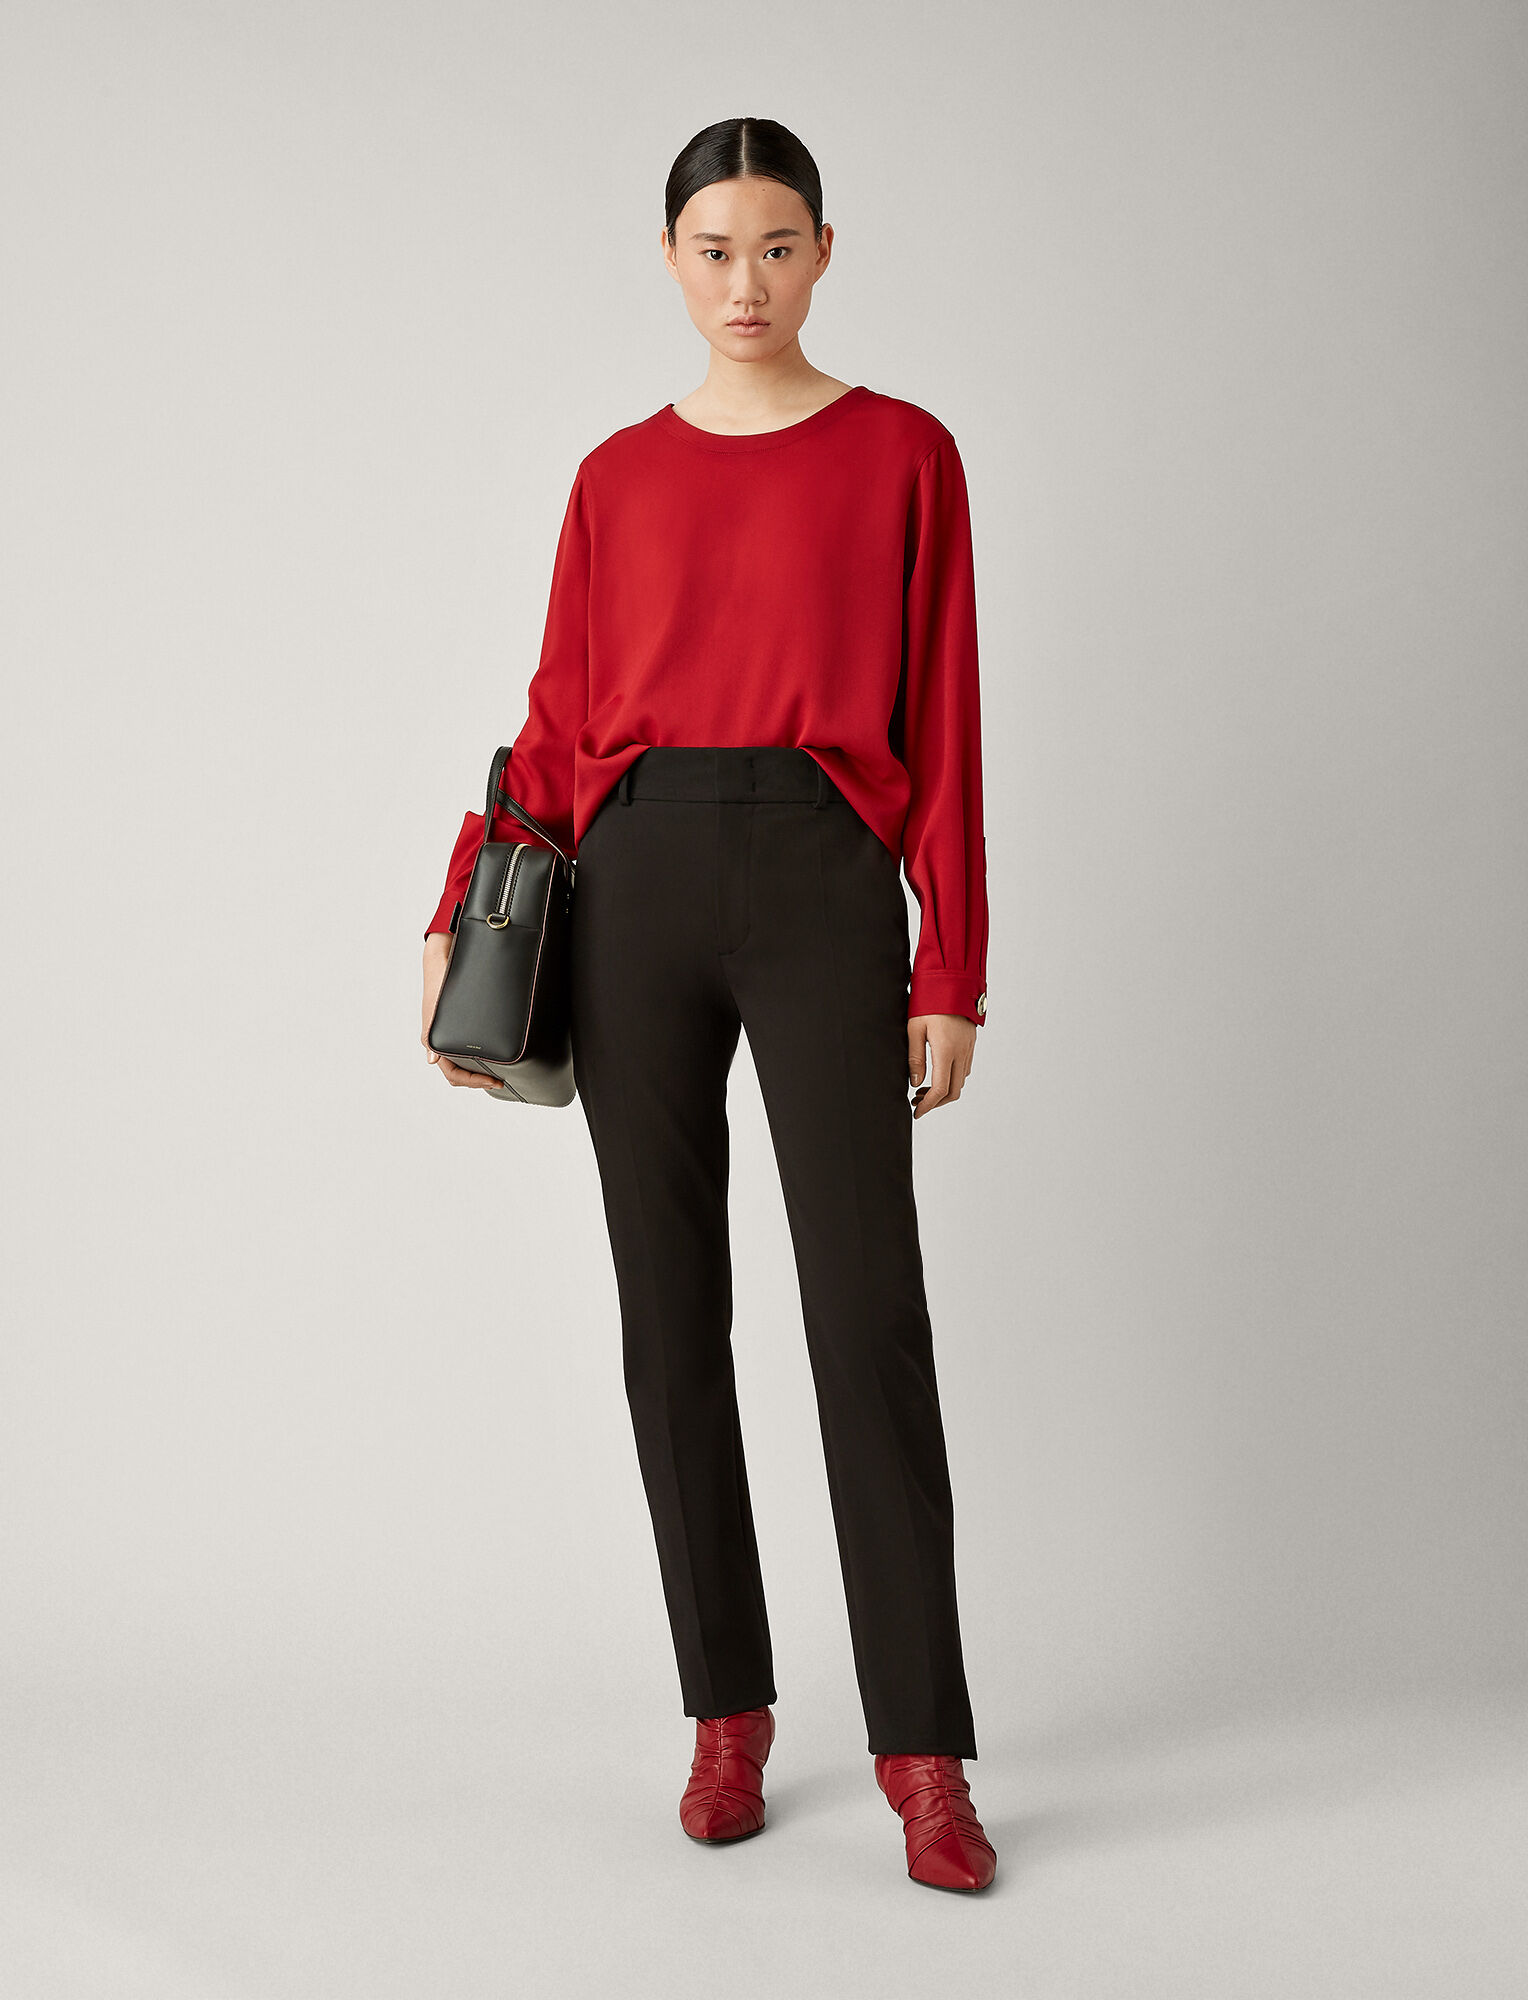 Joseph, Yuli Cotton Bi-Stretch Trousers, in BLACK